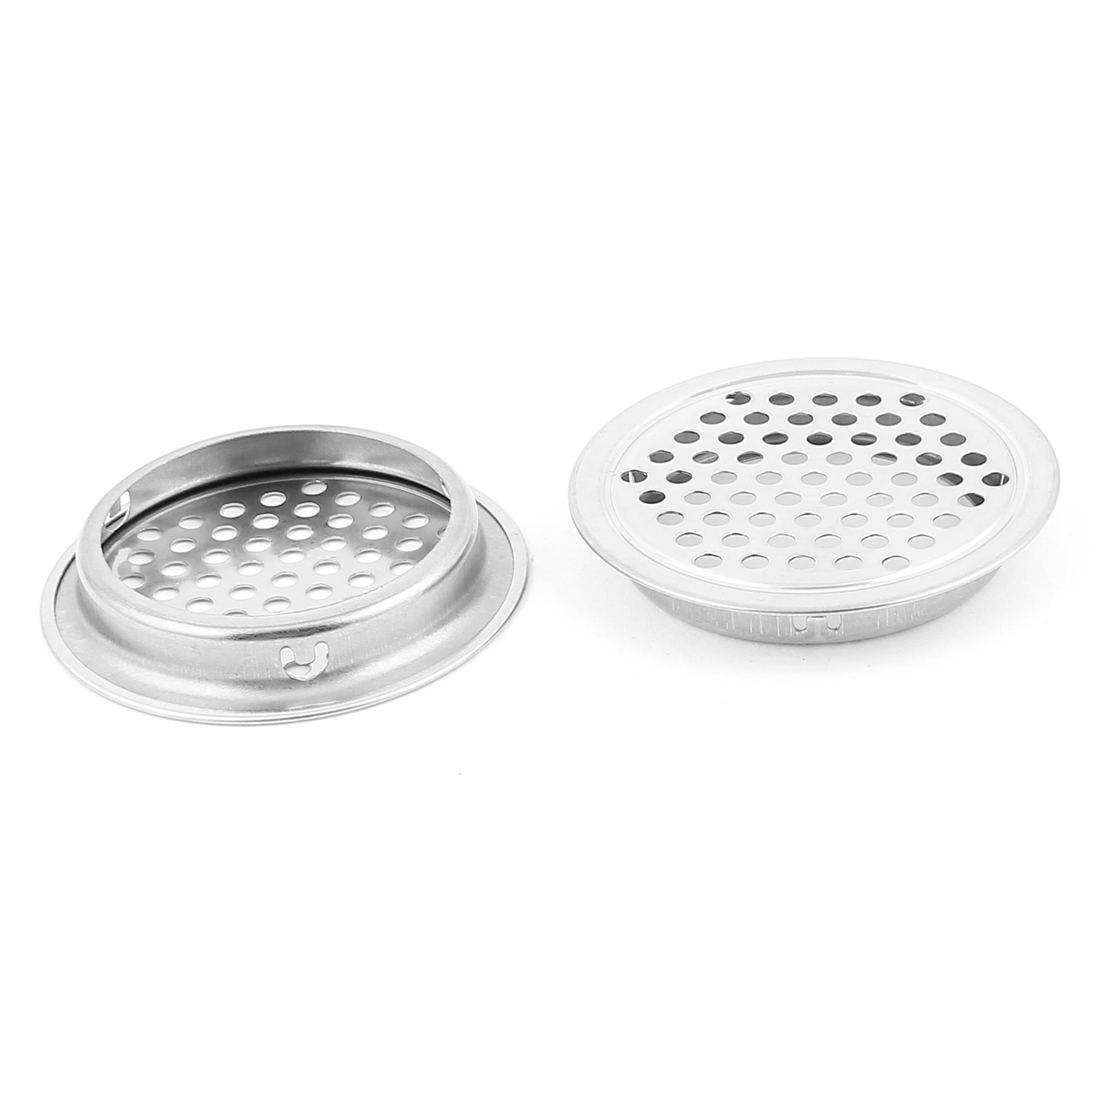 Kitchen Bathroom Bathtub Metal Mesh Hole Waste Sink Strainer Filter Drain Stopper 2pcs